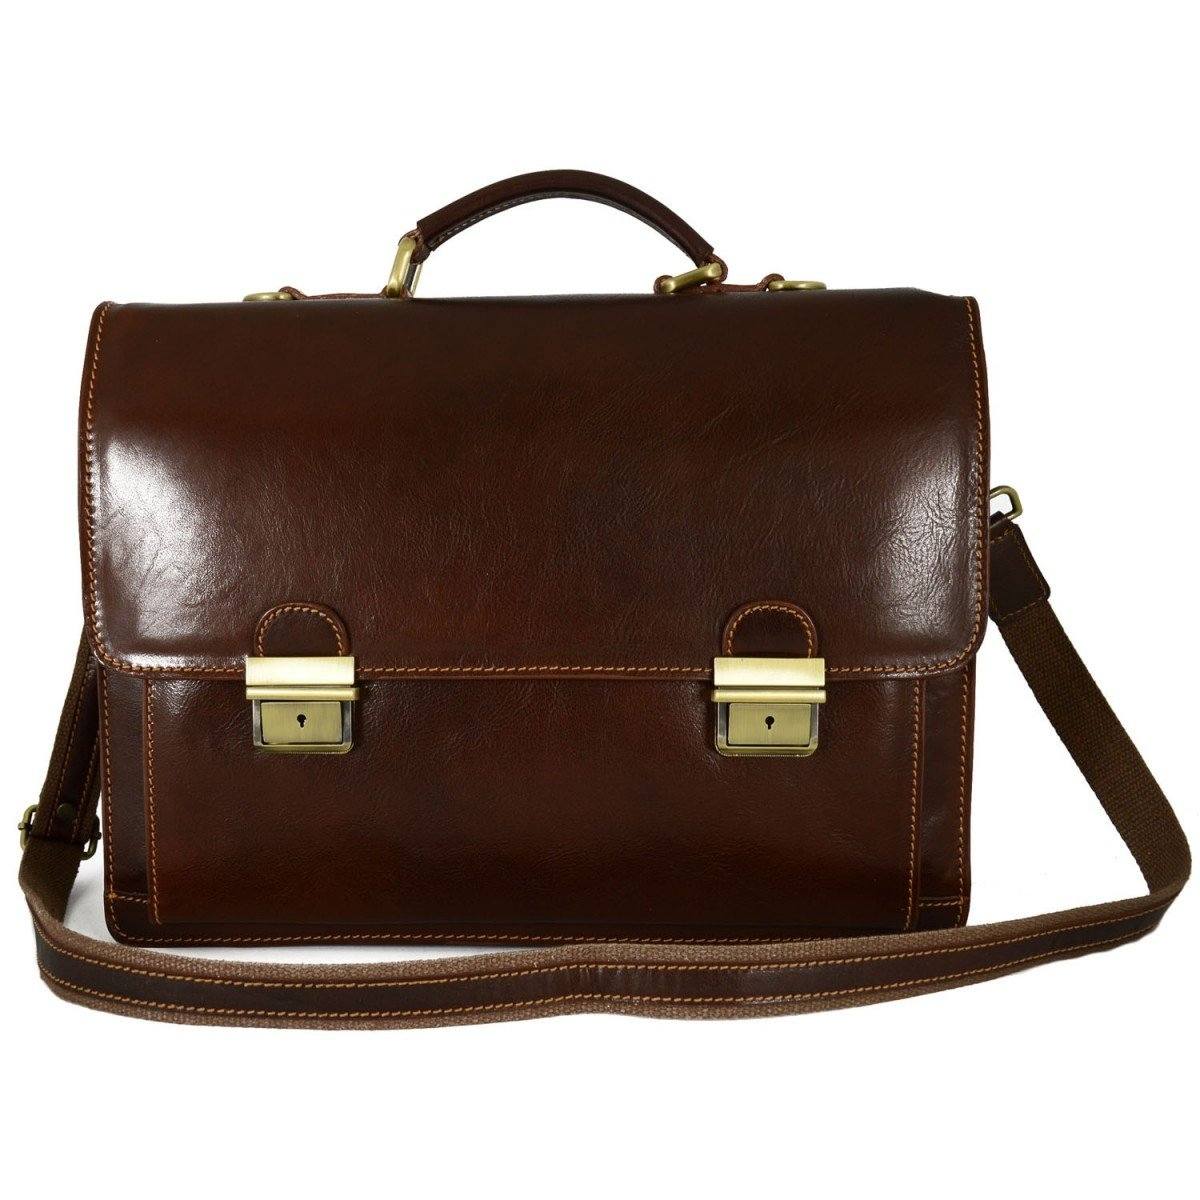 Made In Italy Genuine Leather Business Briefcase With 3 Compartments And 2 Buckles Color Brown - Man Bag B01BSZFB8Q